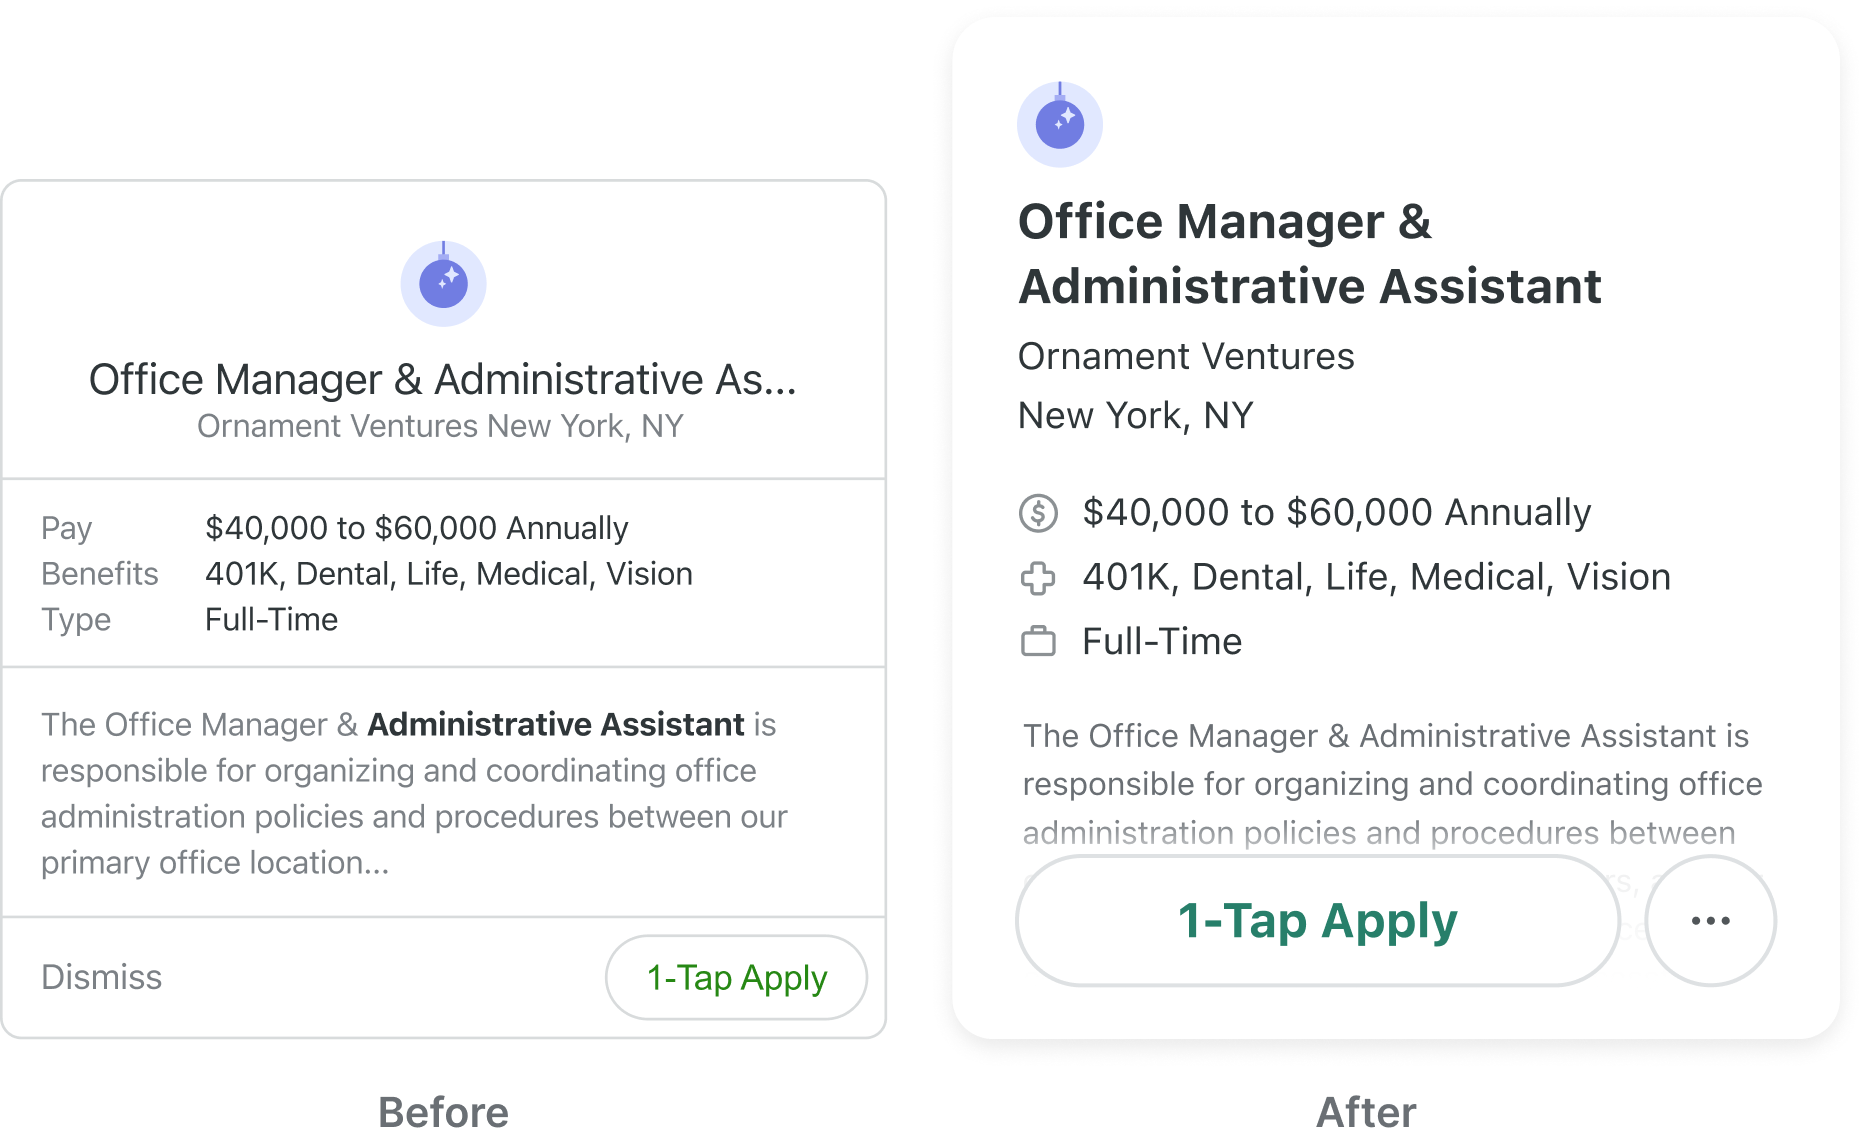 A before and after image of the old and new job card, showing the improvement in readability.